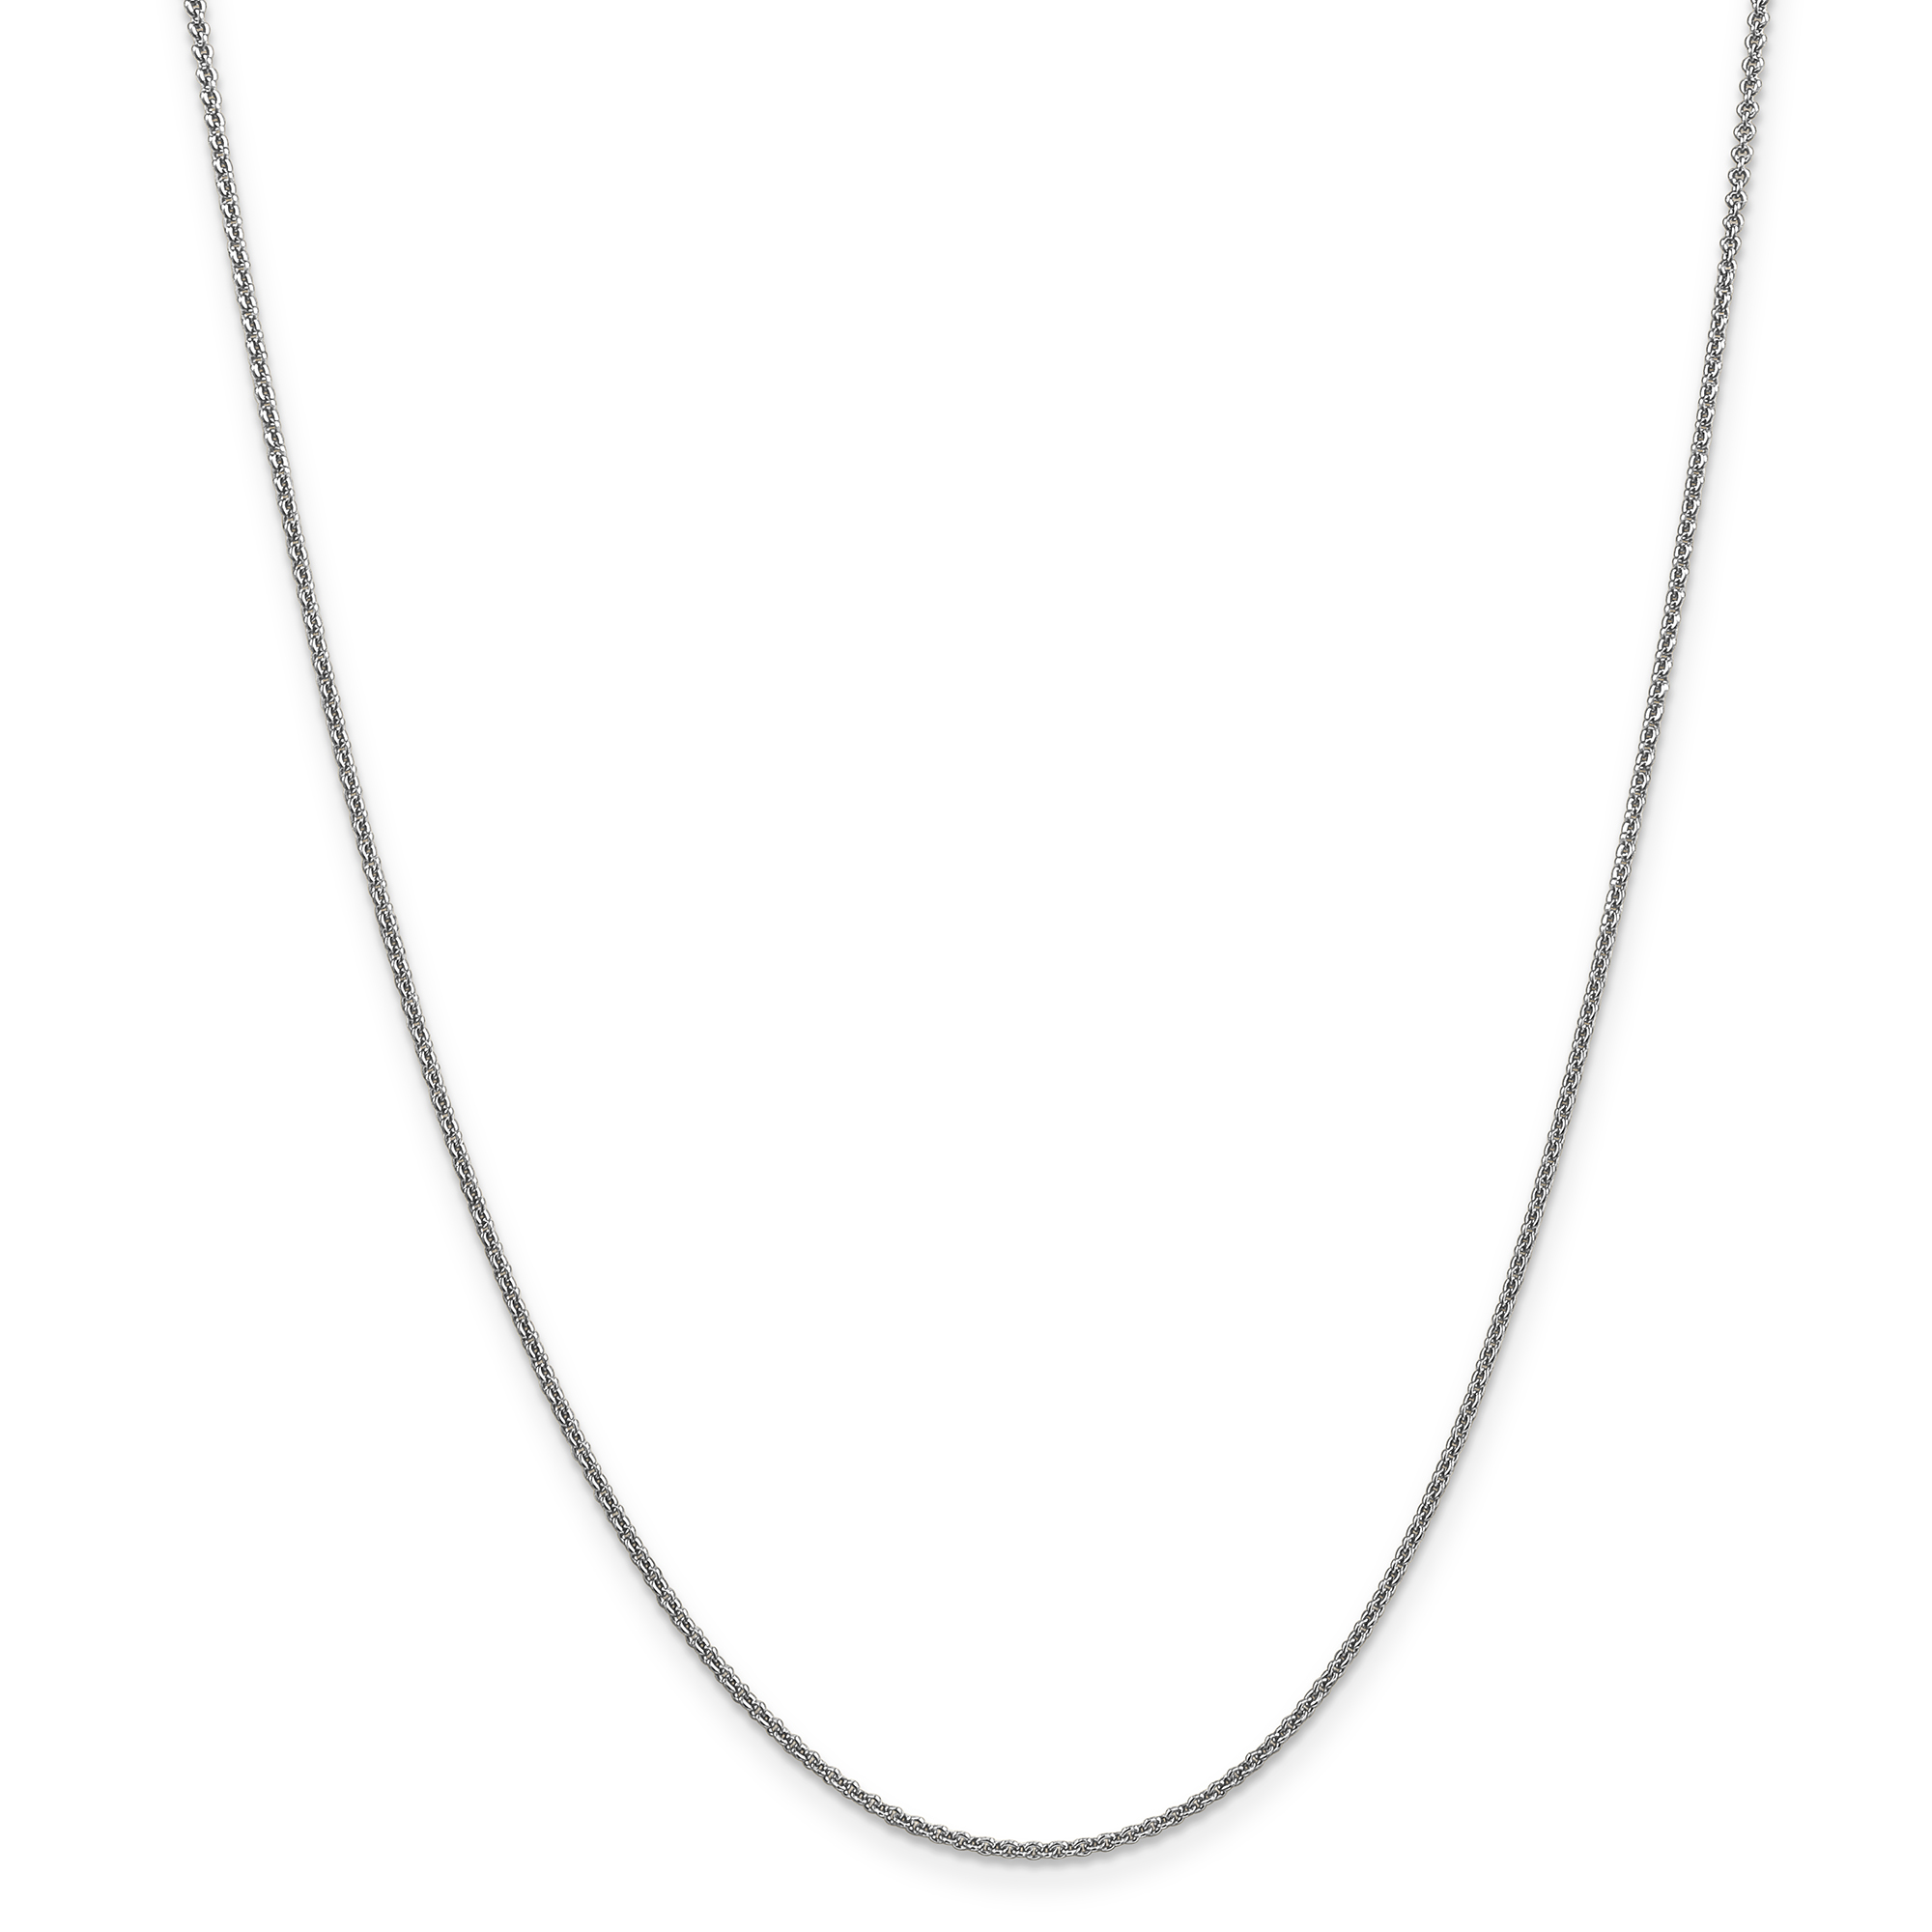 14k White Gold 1.5mm Solid Link Cable Chain Necklace 14 Inch Pendant Charm Fine Jewelry Gifts For Women For Her - image 5 of 5